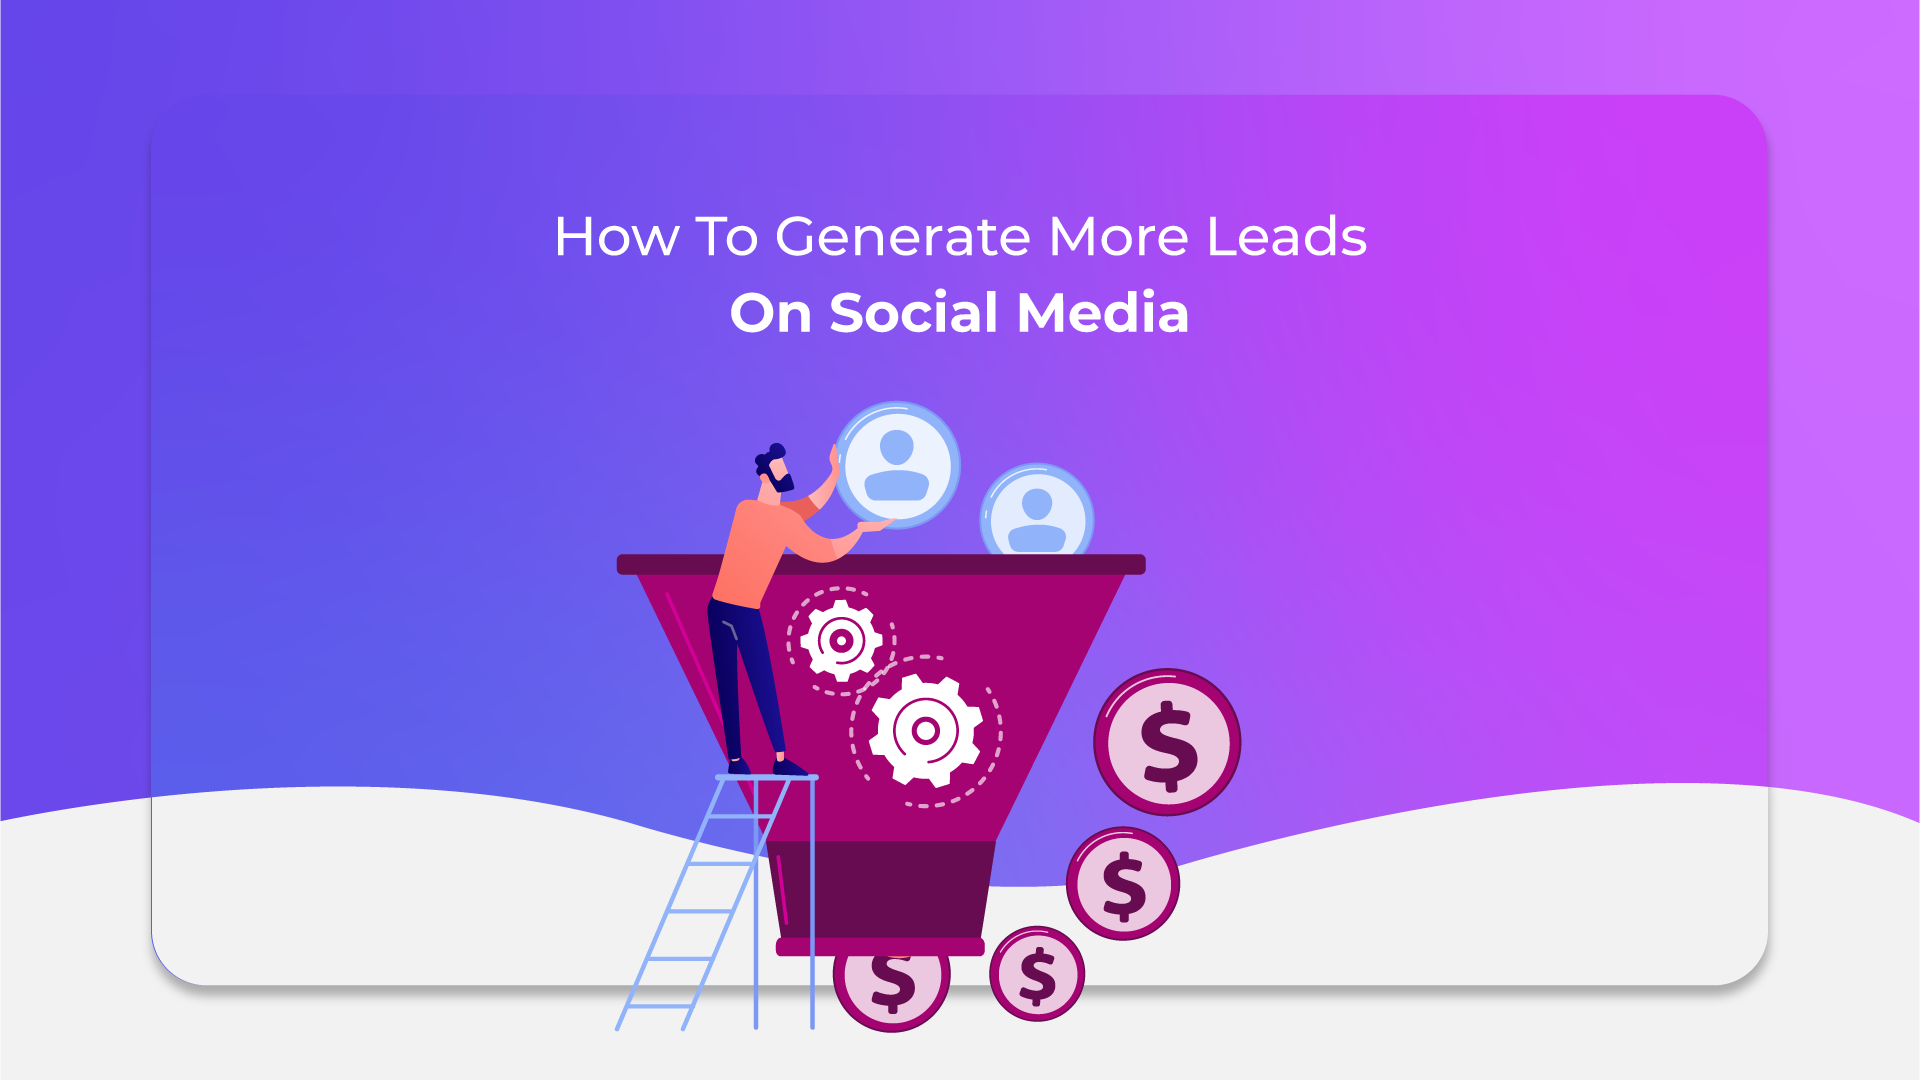 How To Generate More Leads On Social Media